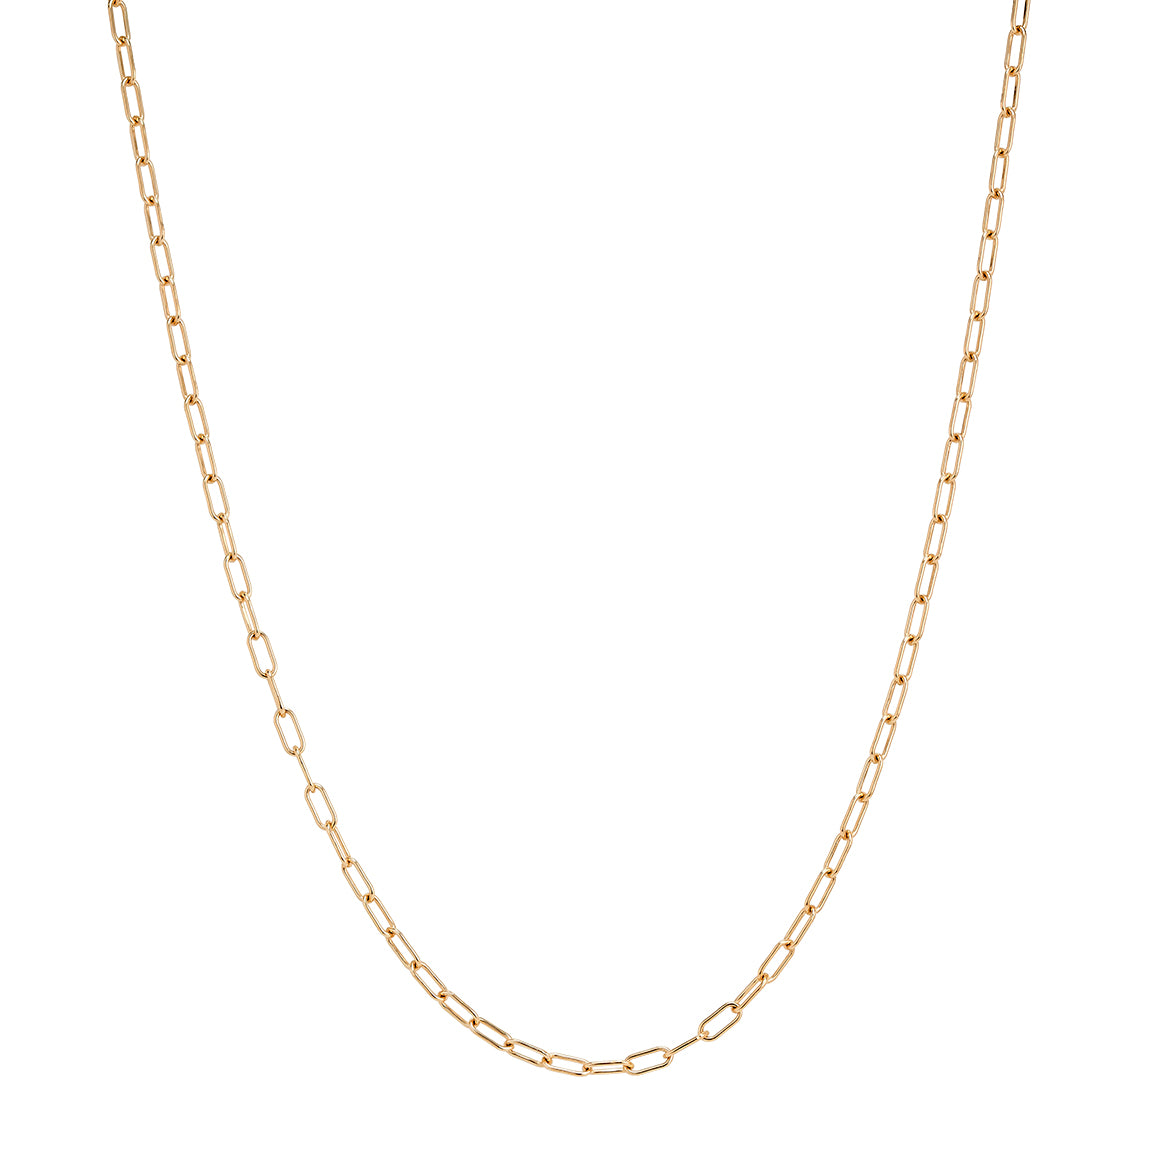 "Gold 30"" Oval Link Chain"